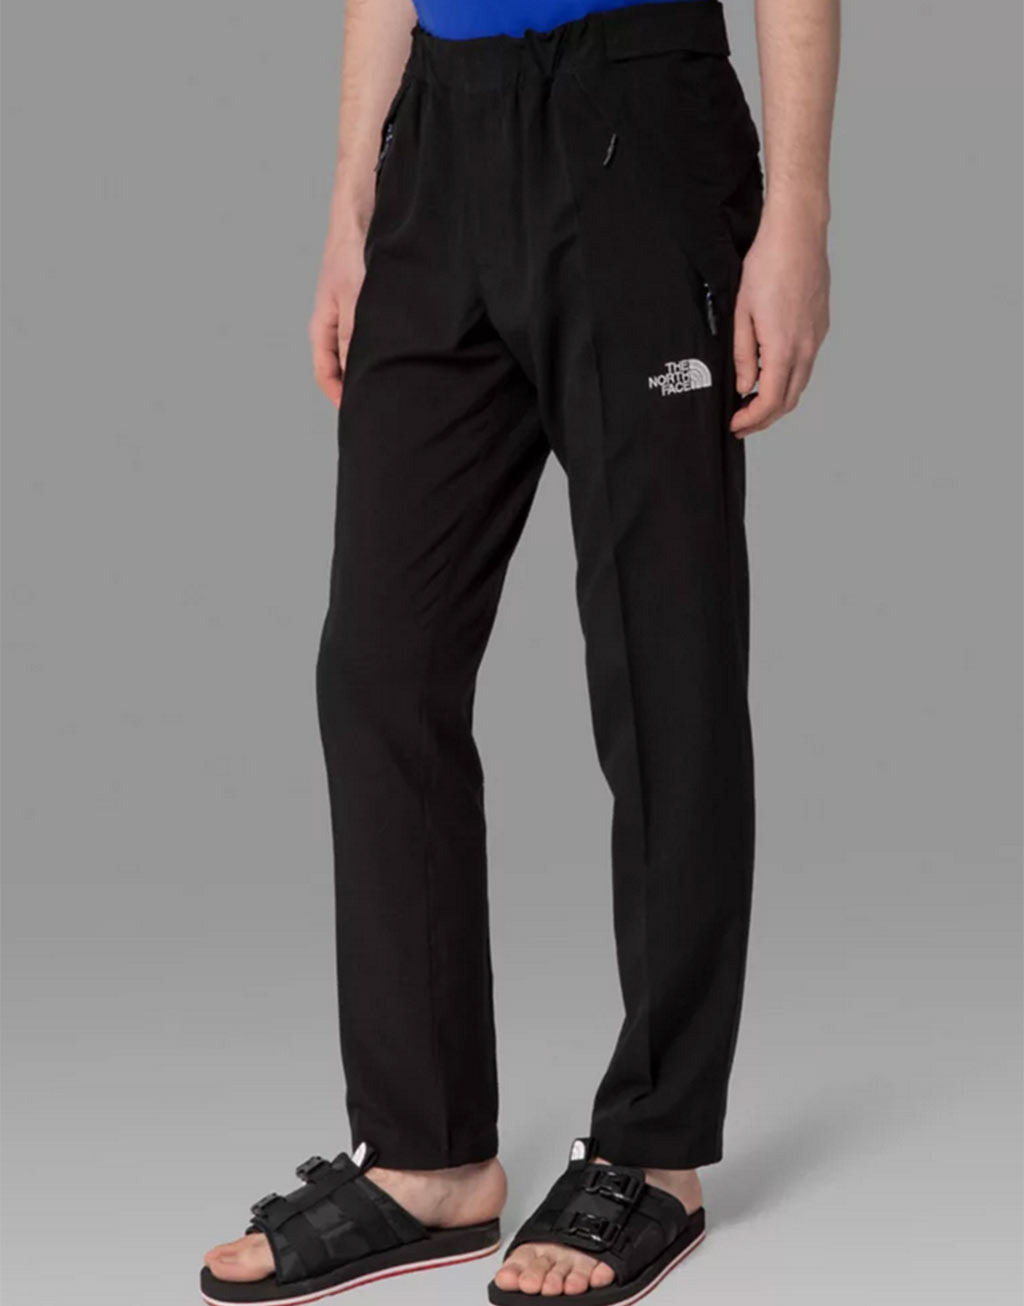 best techwear pants 8